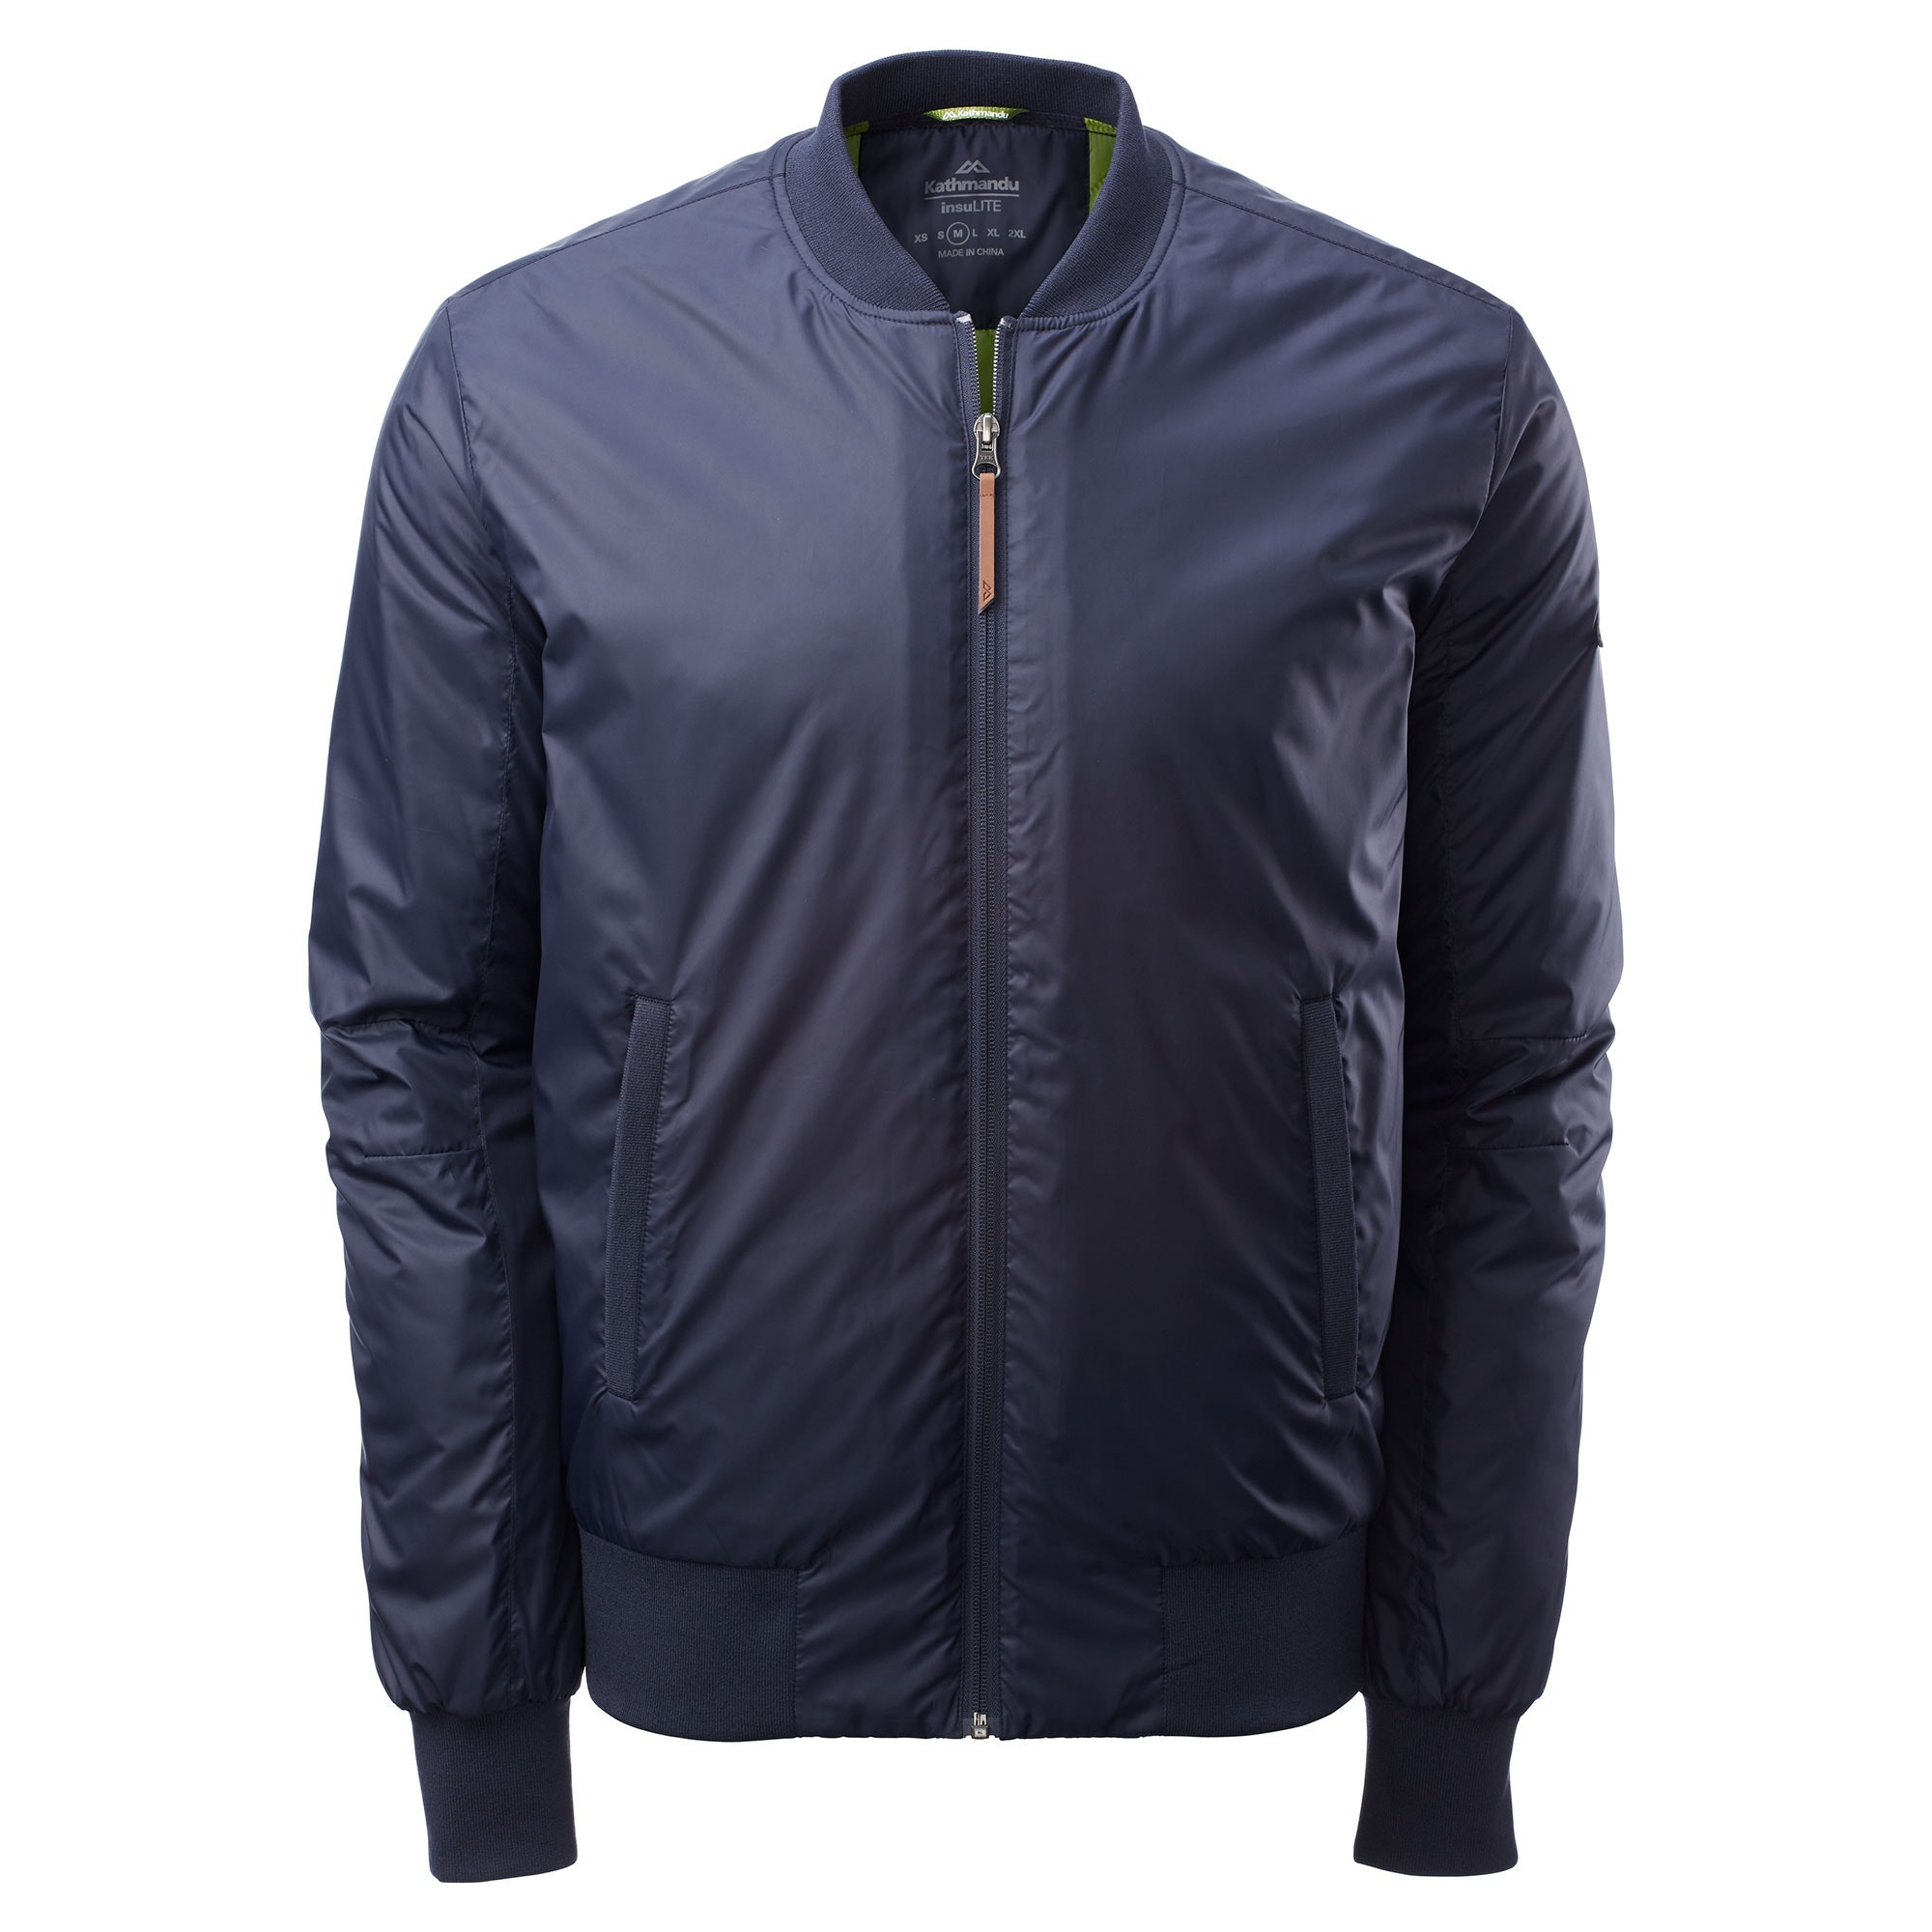 67e0272c6 Details about Kathmandu Contender Insulated Water-Repellent Lightweight  Men's Bomber Jacket